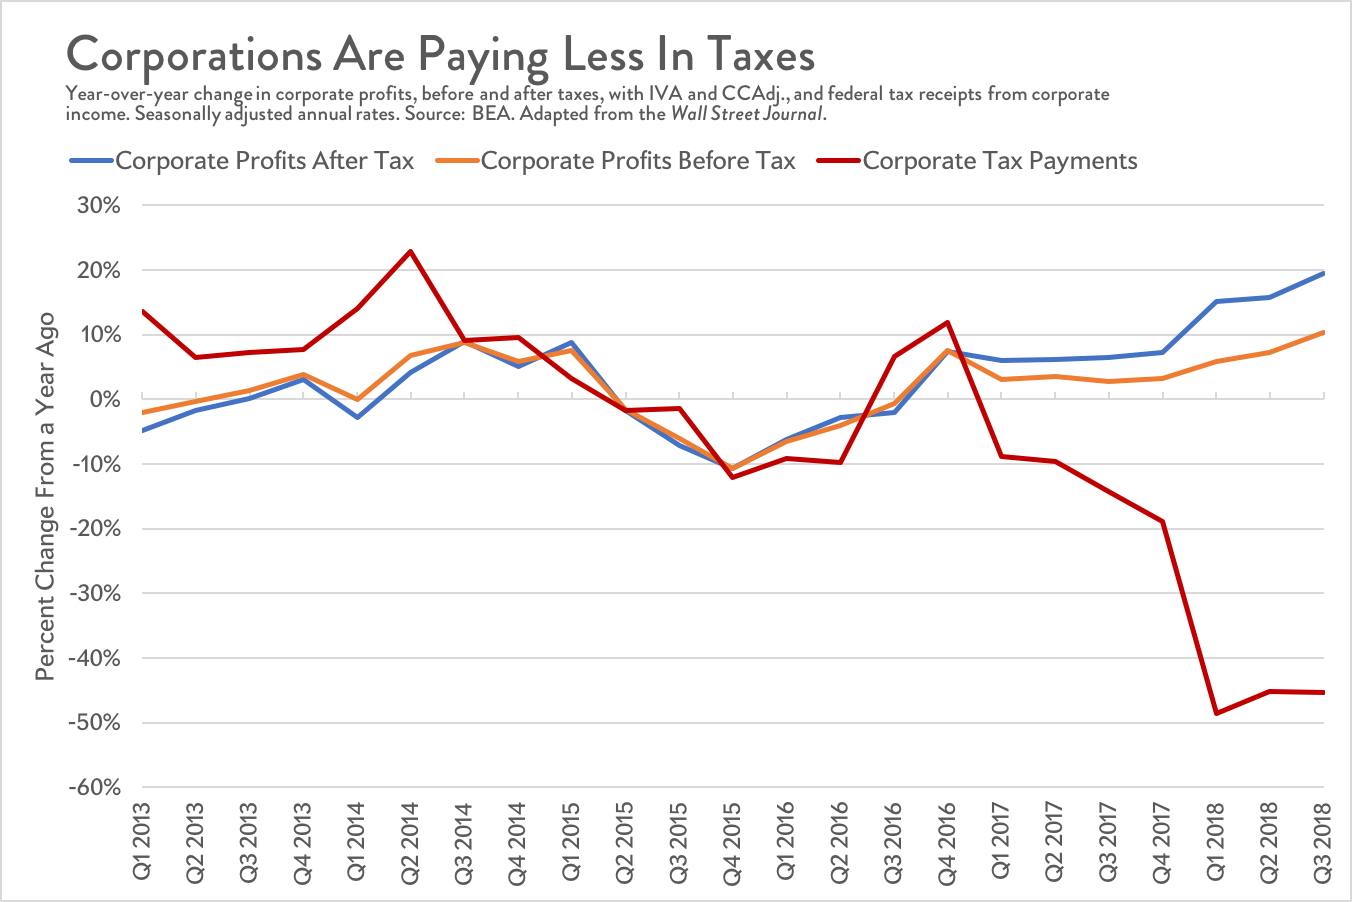 After-tax corporate profits